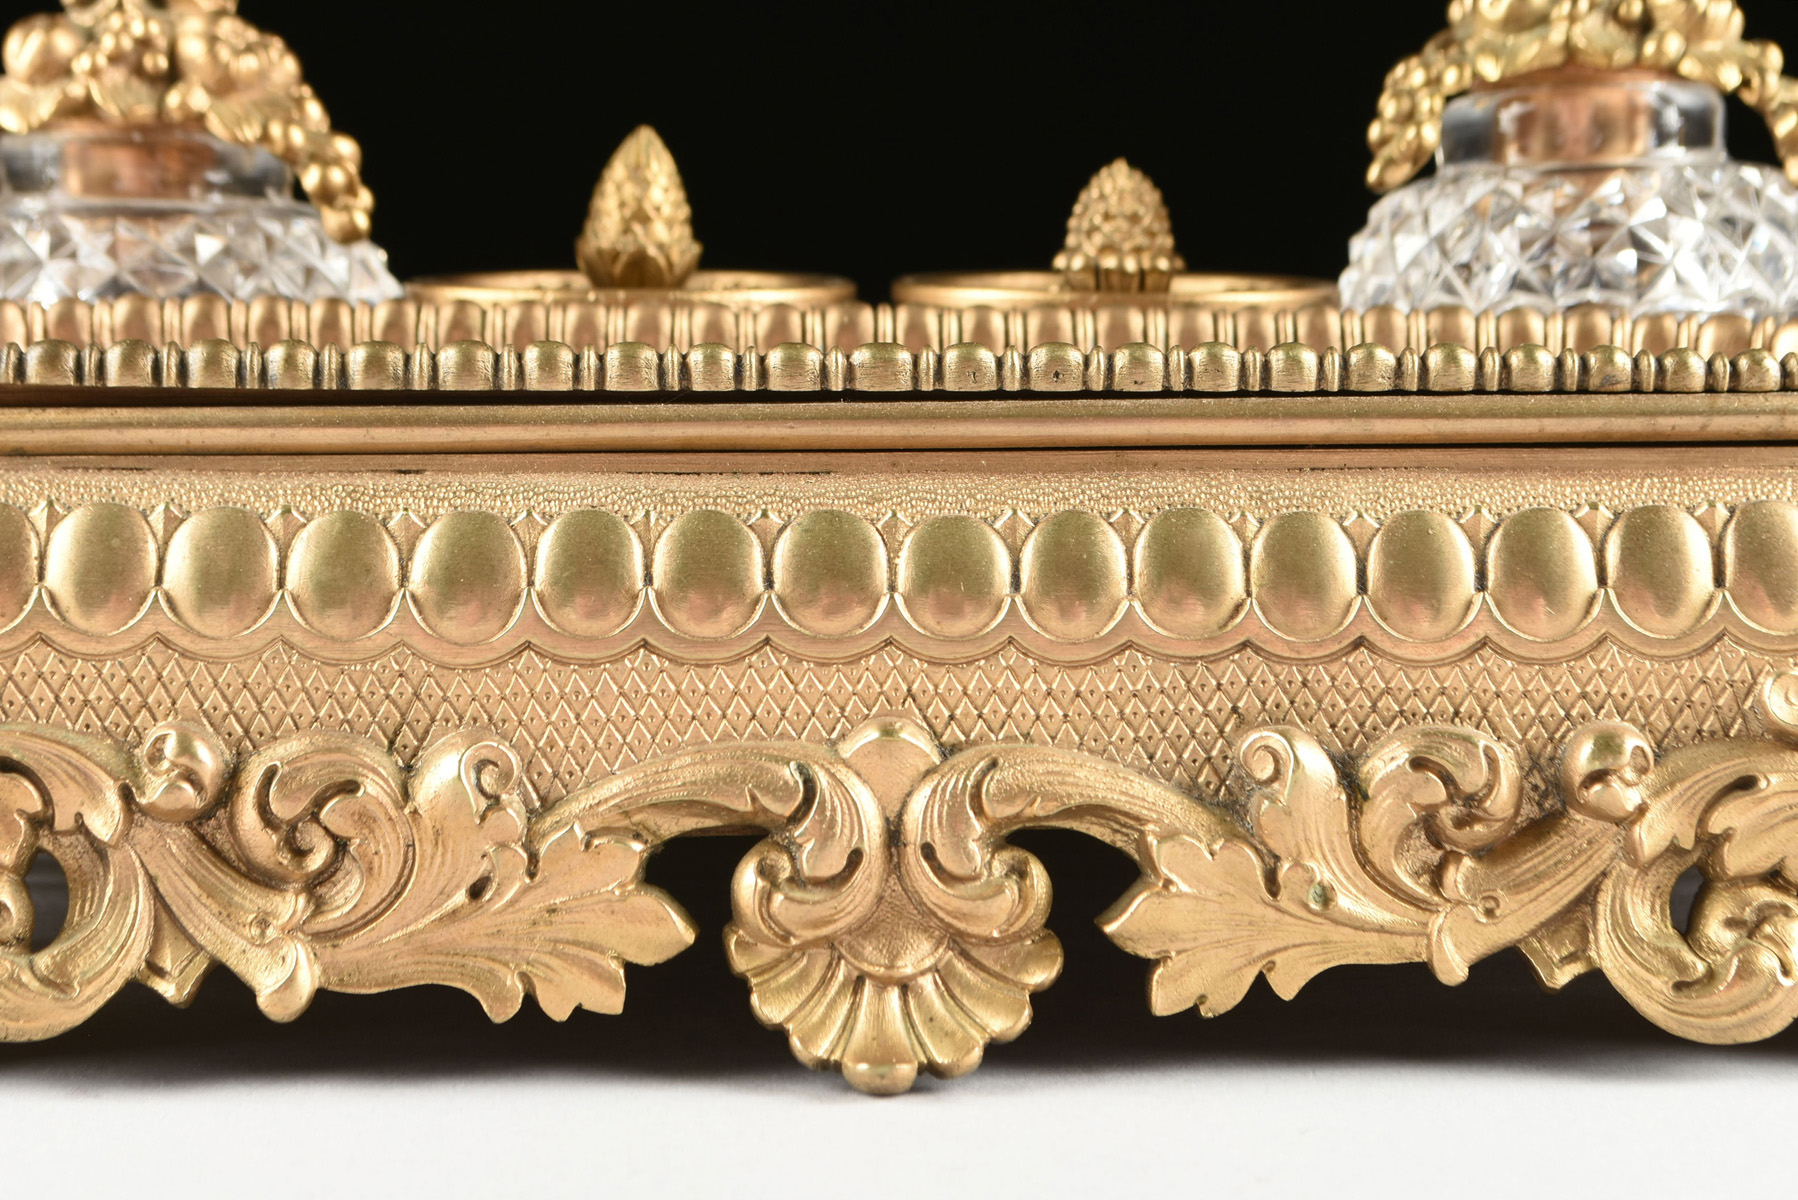 Lot 6 - A NÉO-GREC GILT BRONZE AND CRYSTAL ENCRIER, BELLE ÉPOQUE (1870-1914), the crystal inkwells